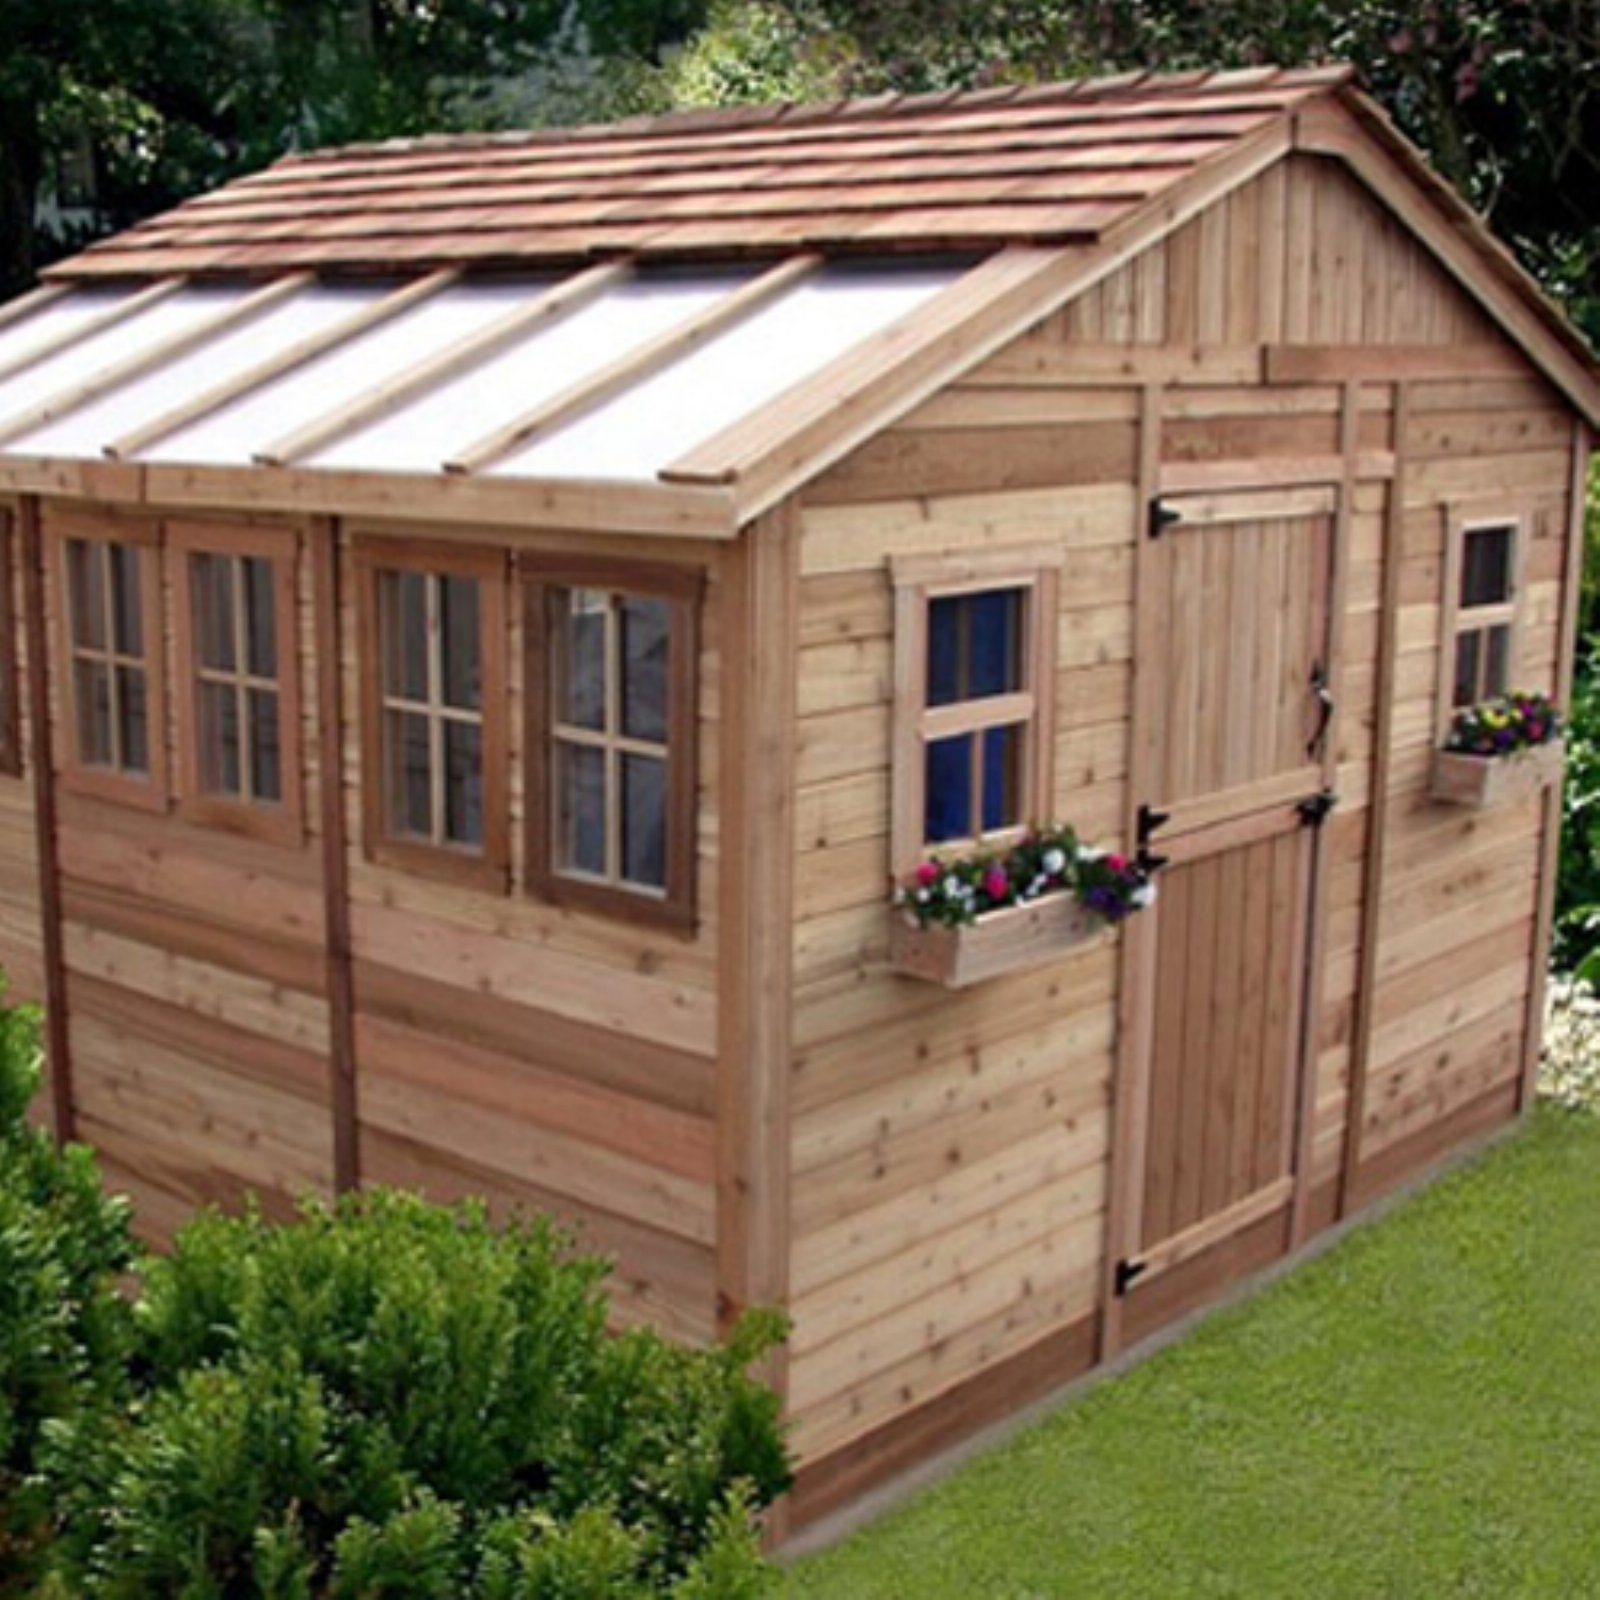 Outdoor Living Today SSGS1212 Sunshed 12 x 12 ft. Garden Shed